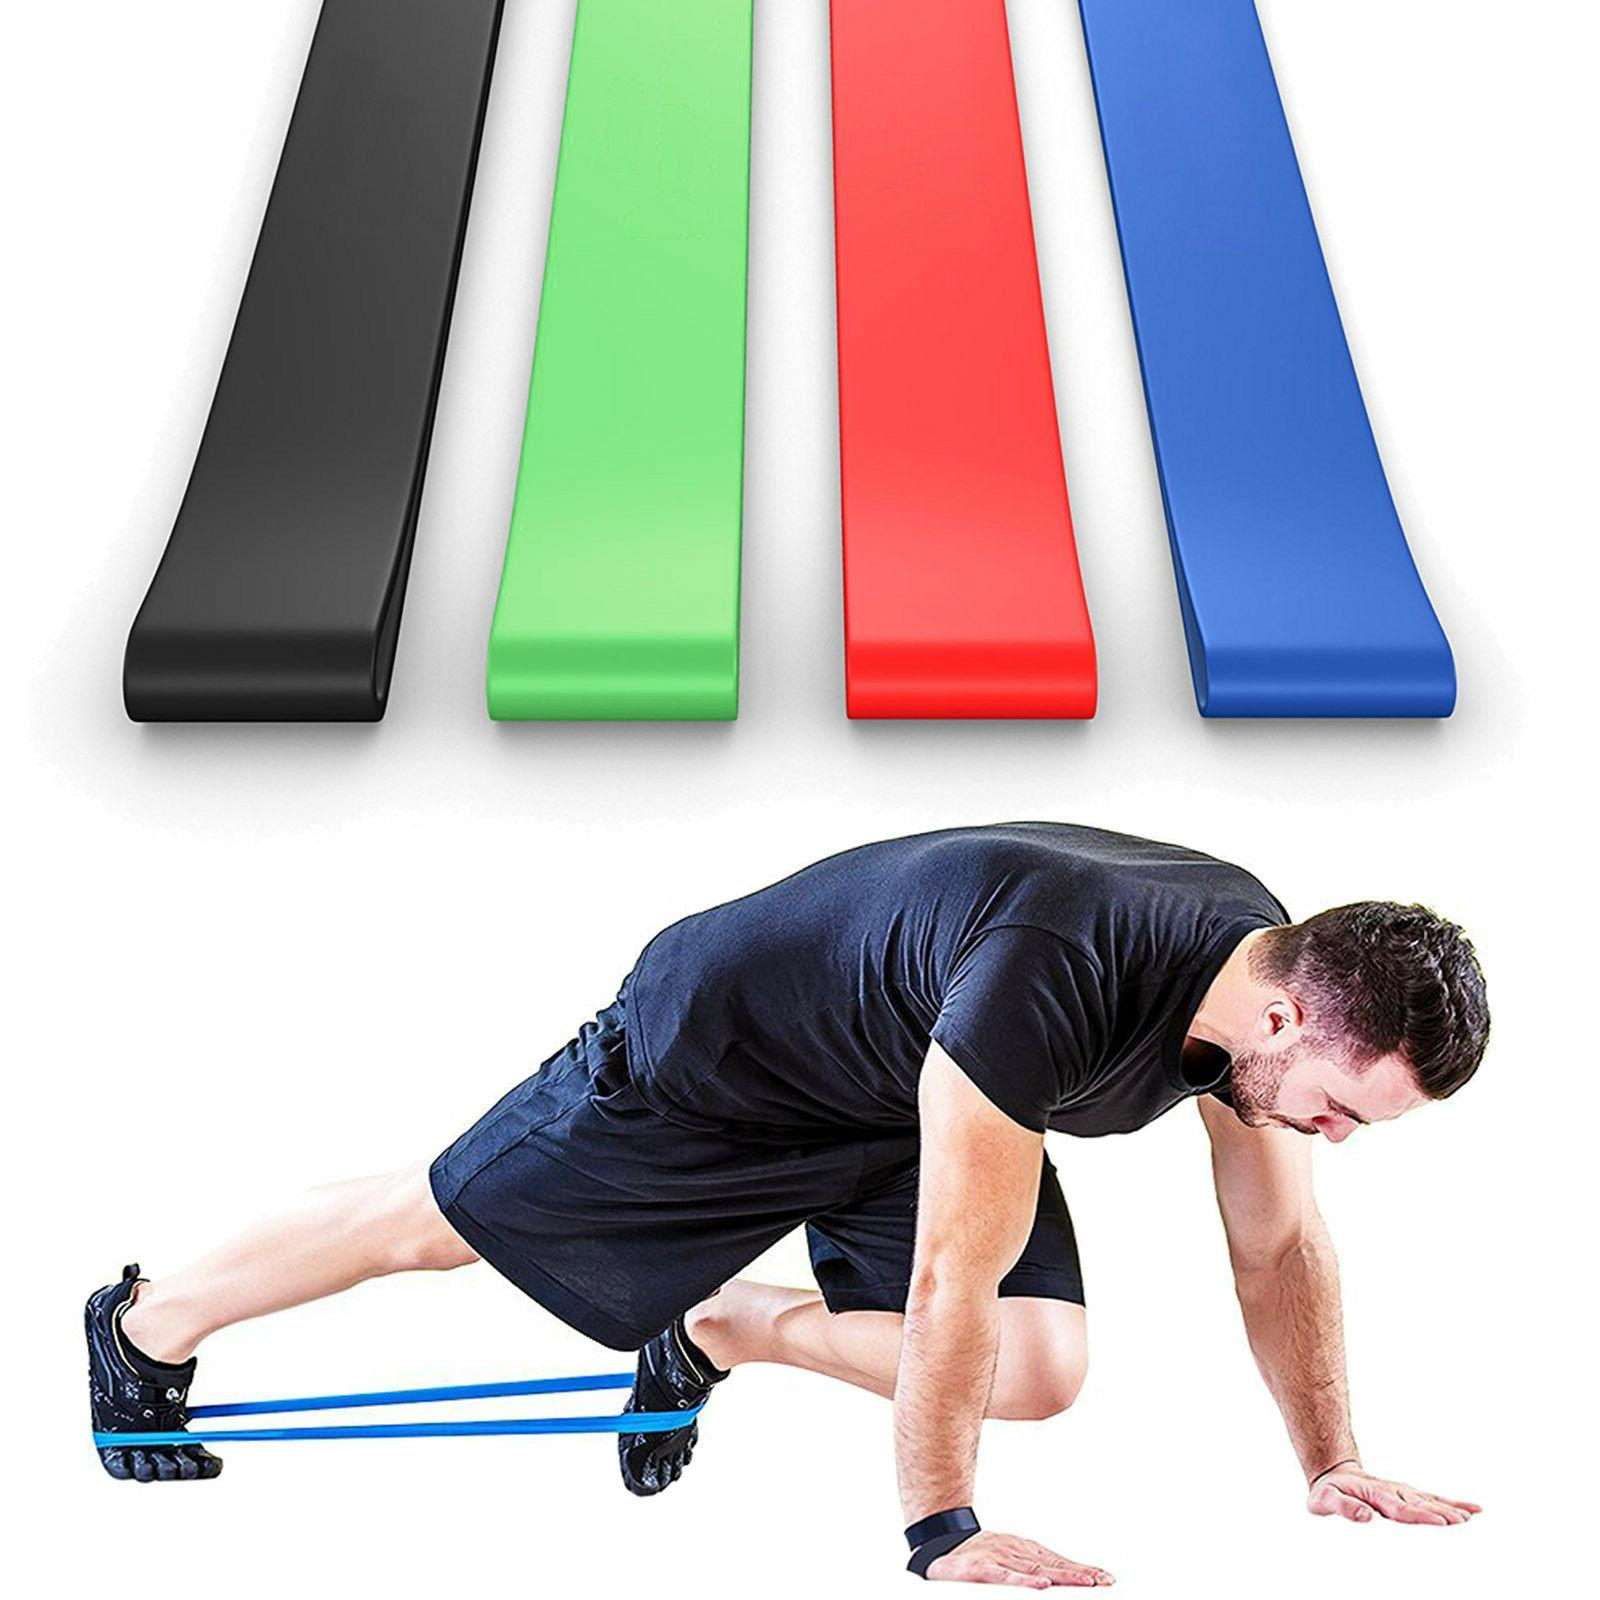 1 5lots light to heavy resistance bands